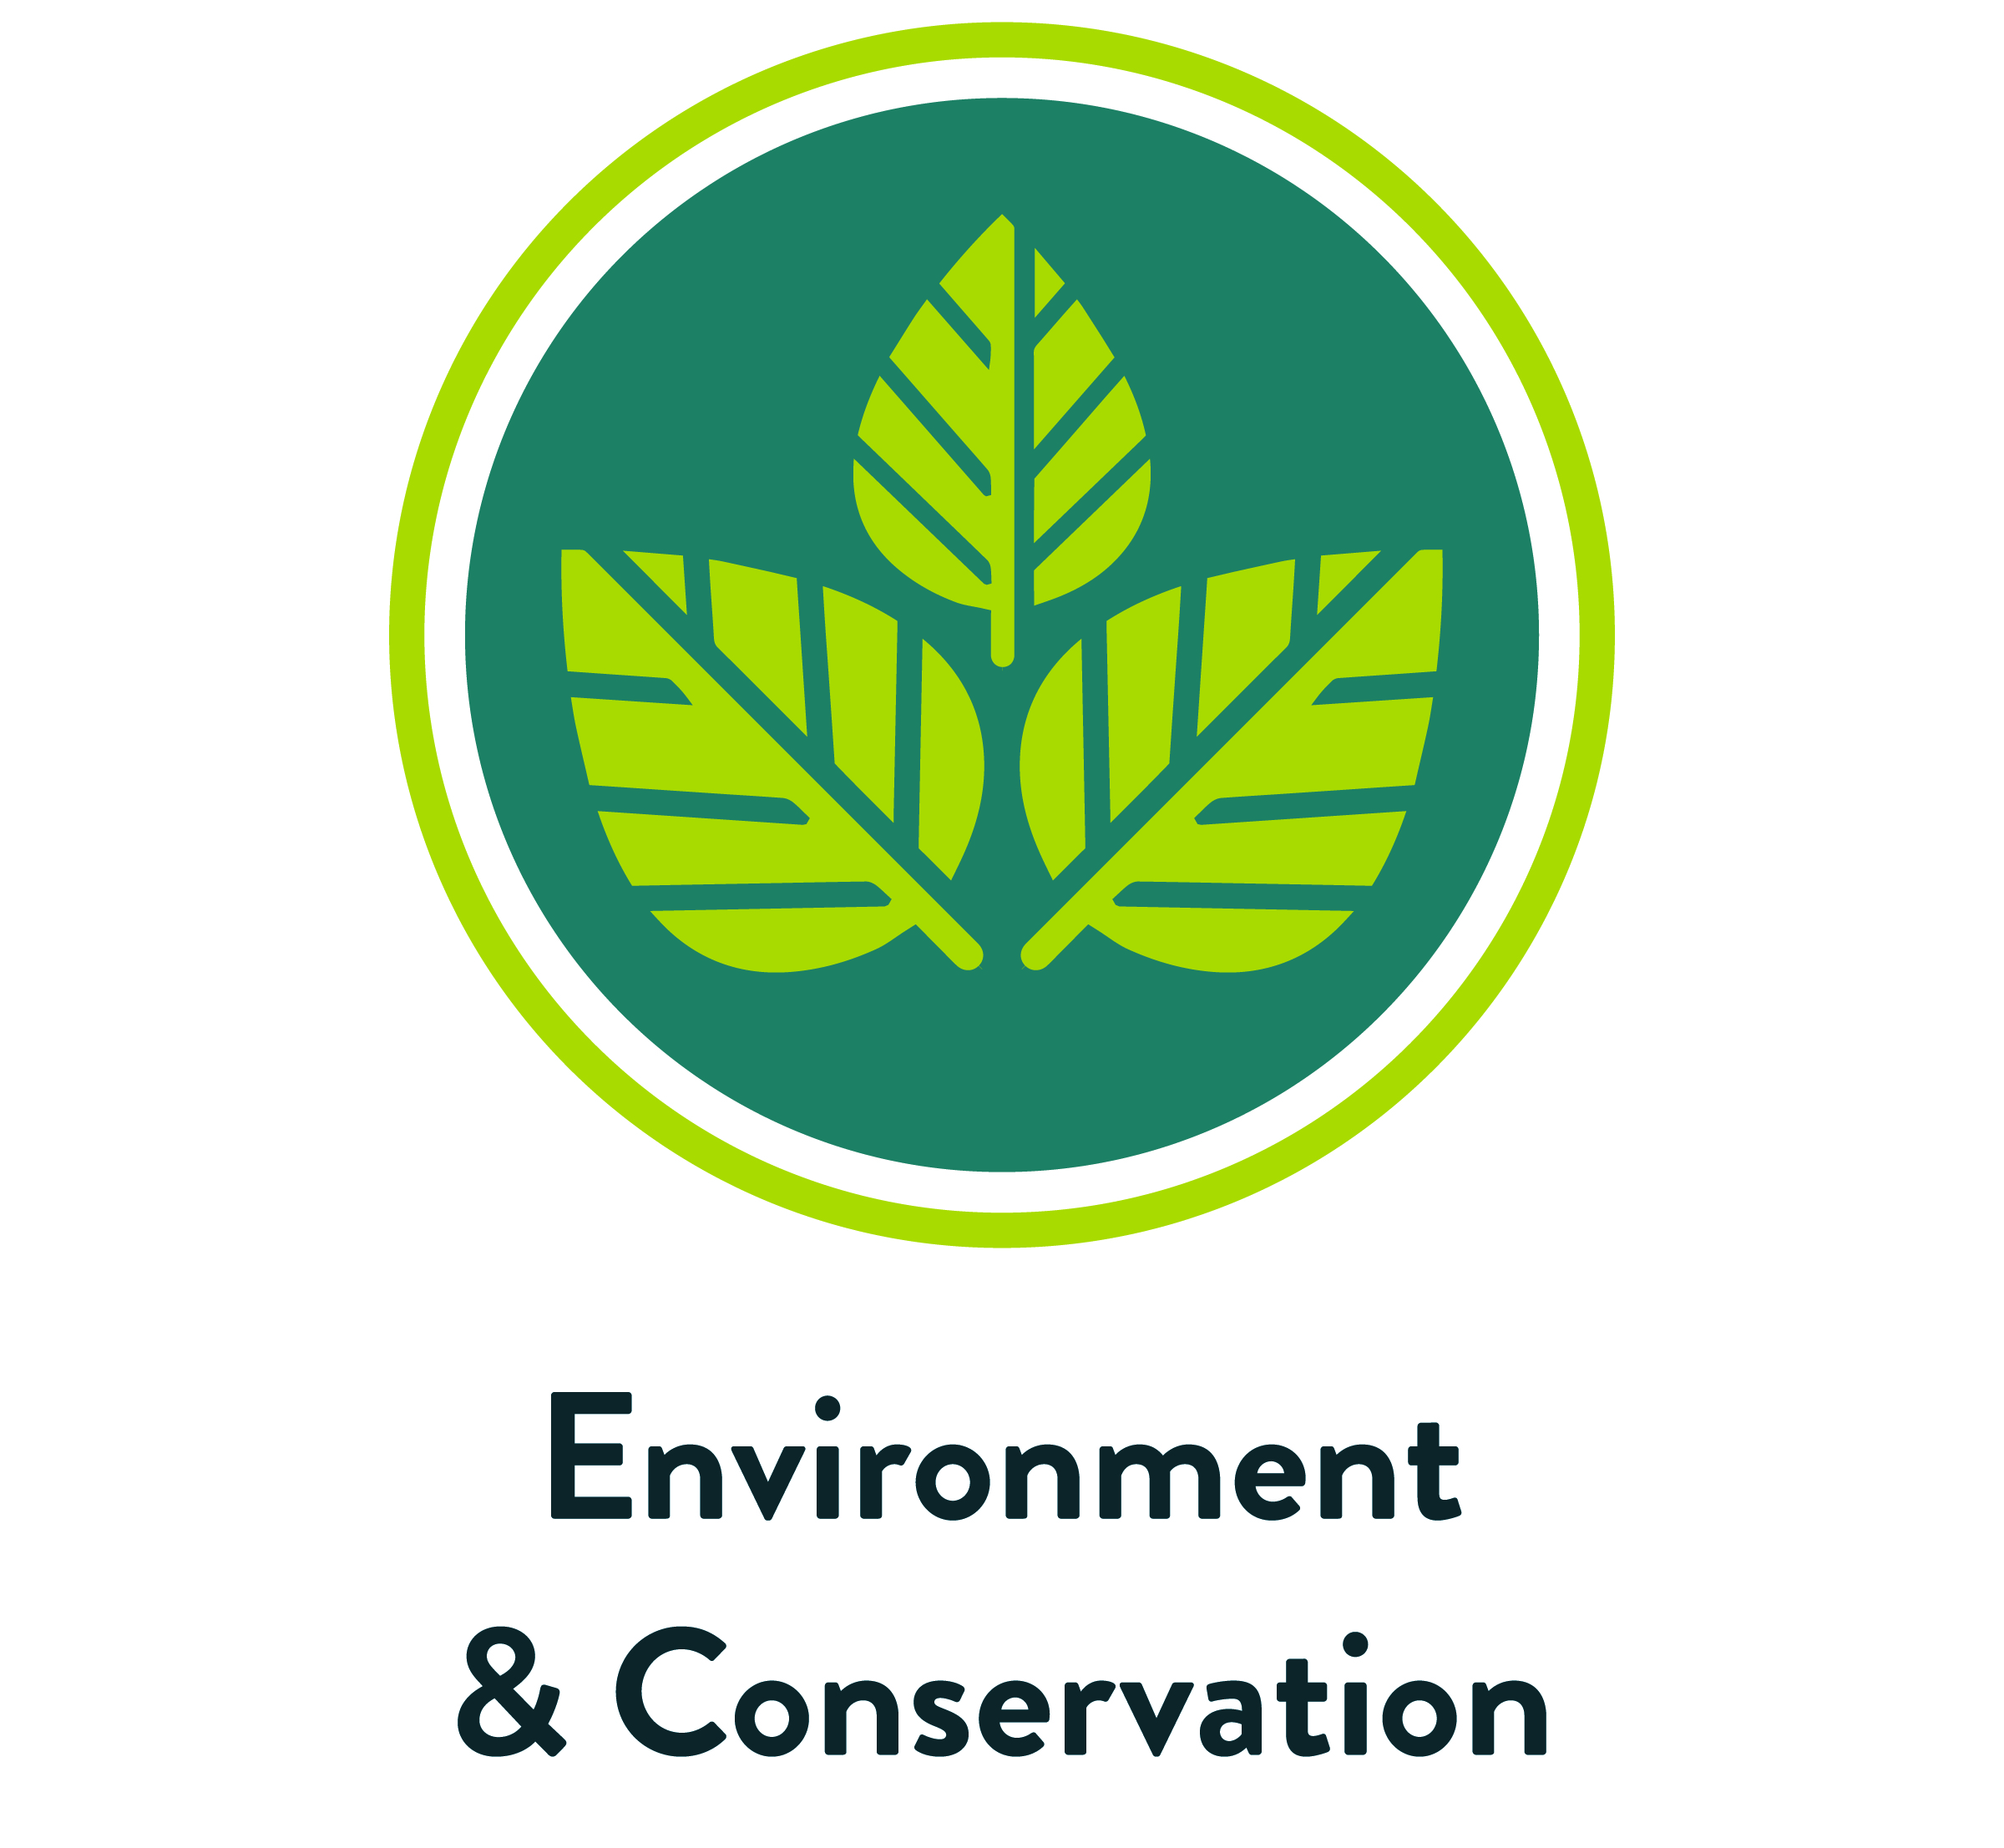 Environment & Conservation